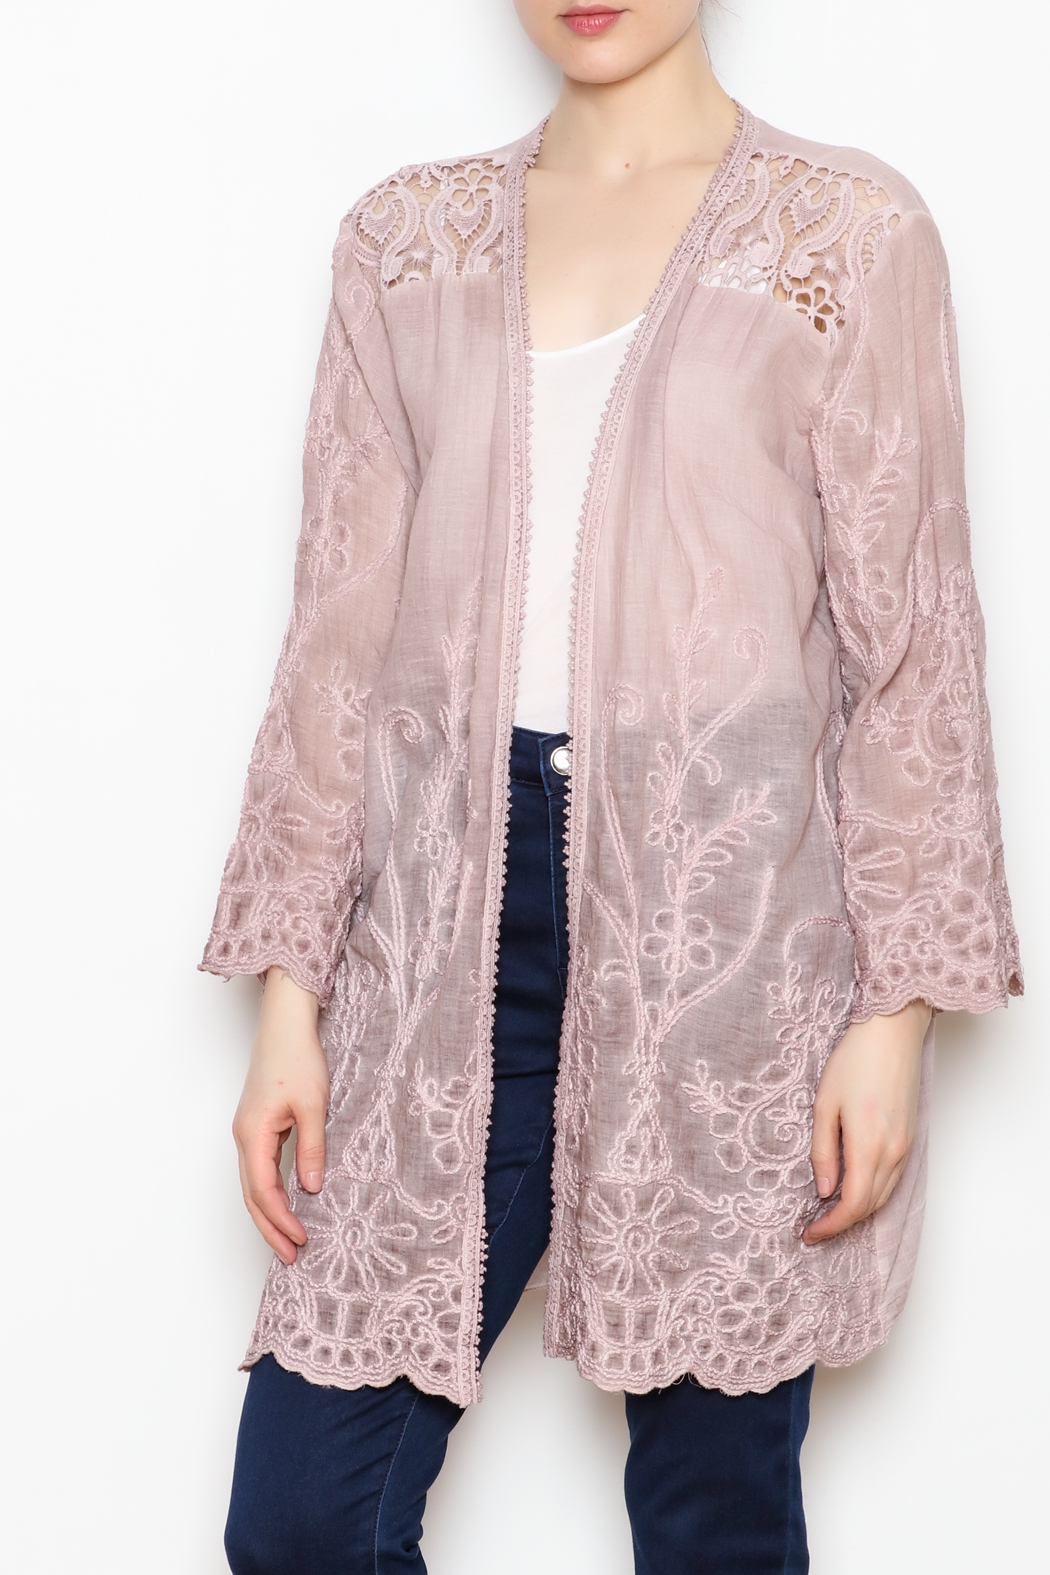 SCANDAL Embroidered Lace Kimono - Main Image